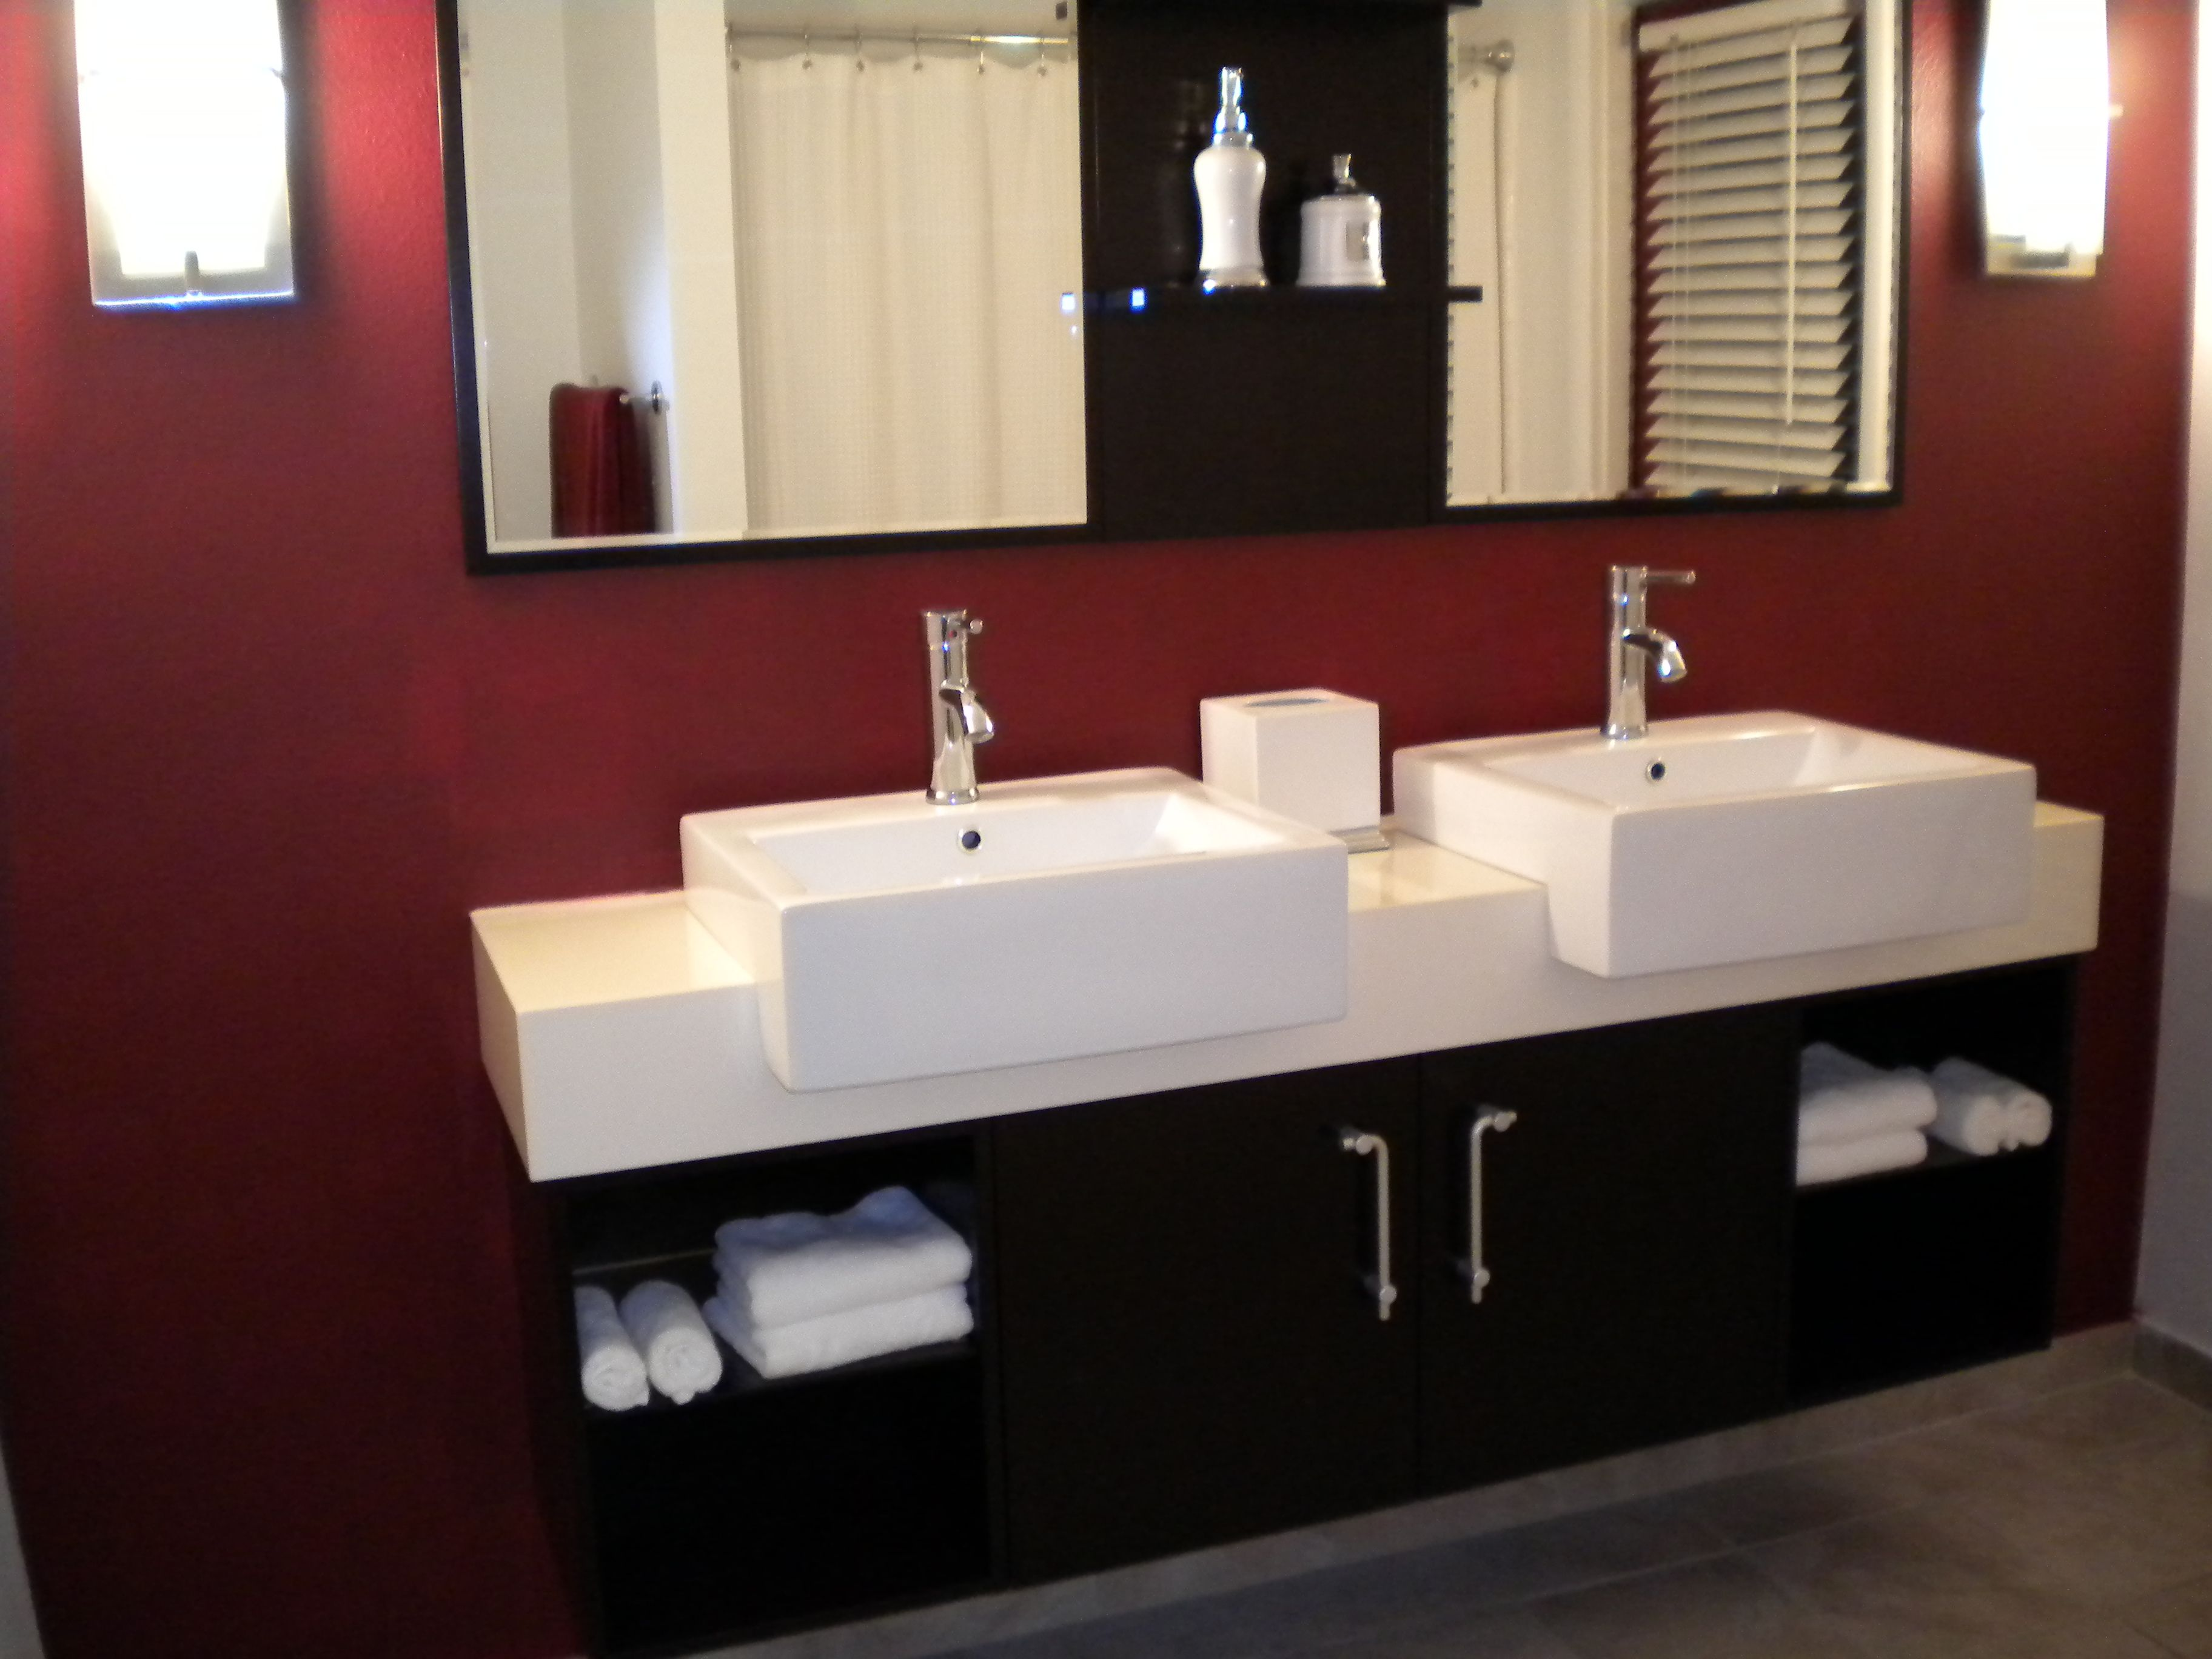 Beau Scottsdale Az. Bathroom Double Sinks Hang On The Wall This Was Purchased  Over The Internet. Came In A Ready To Install With The Plumbing And Fixtures  ...